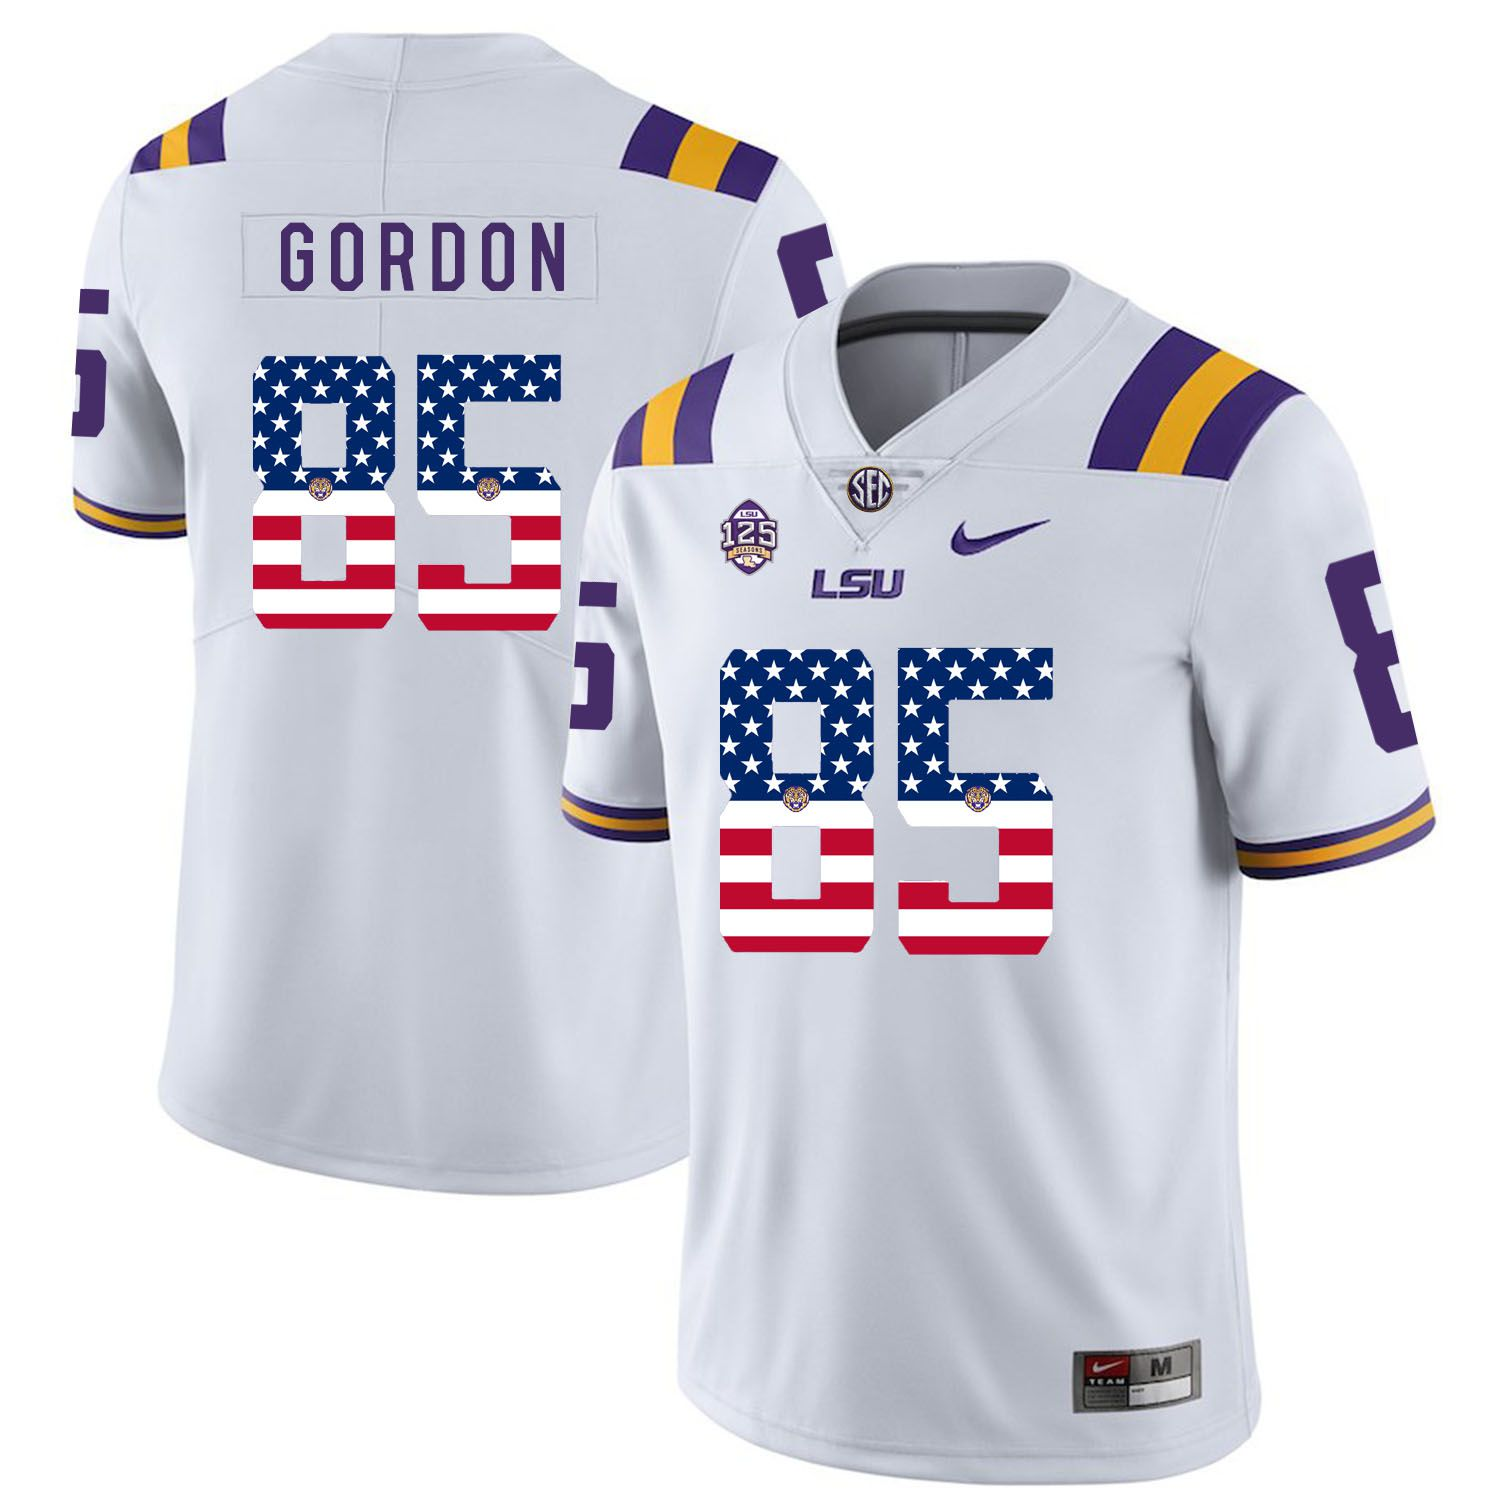 Men LSU Tigers 85 Gordon White Flag Customized NCAA Jerseys